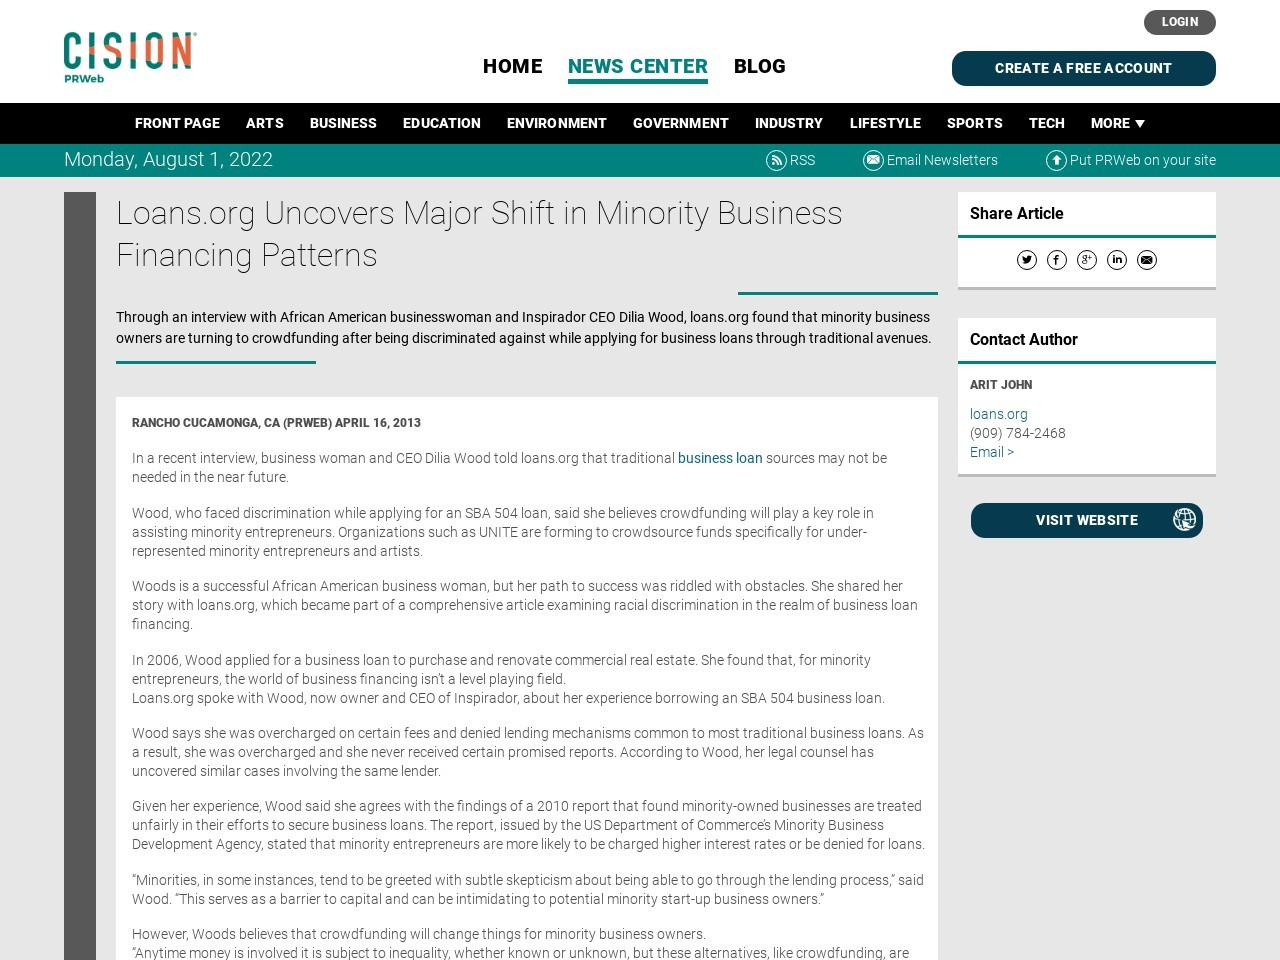 Loans.org Uncovers Major Shift in Minority Business Financing Patterns